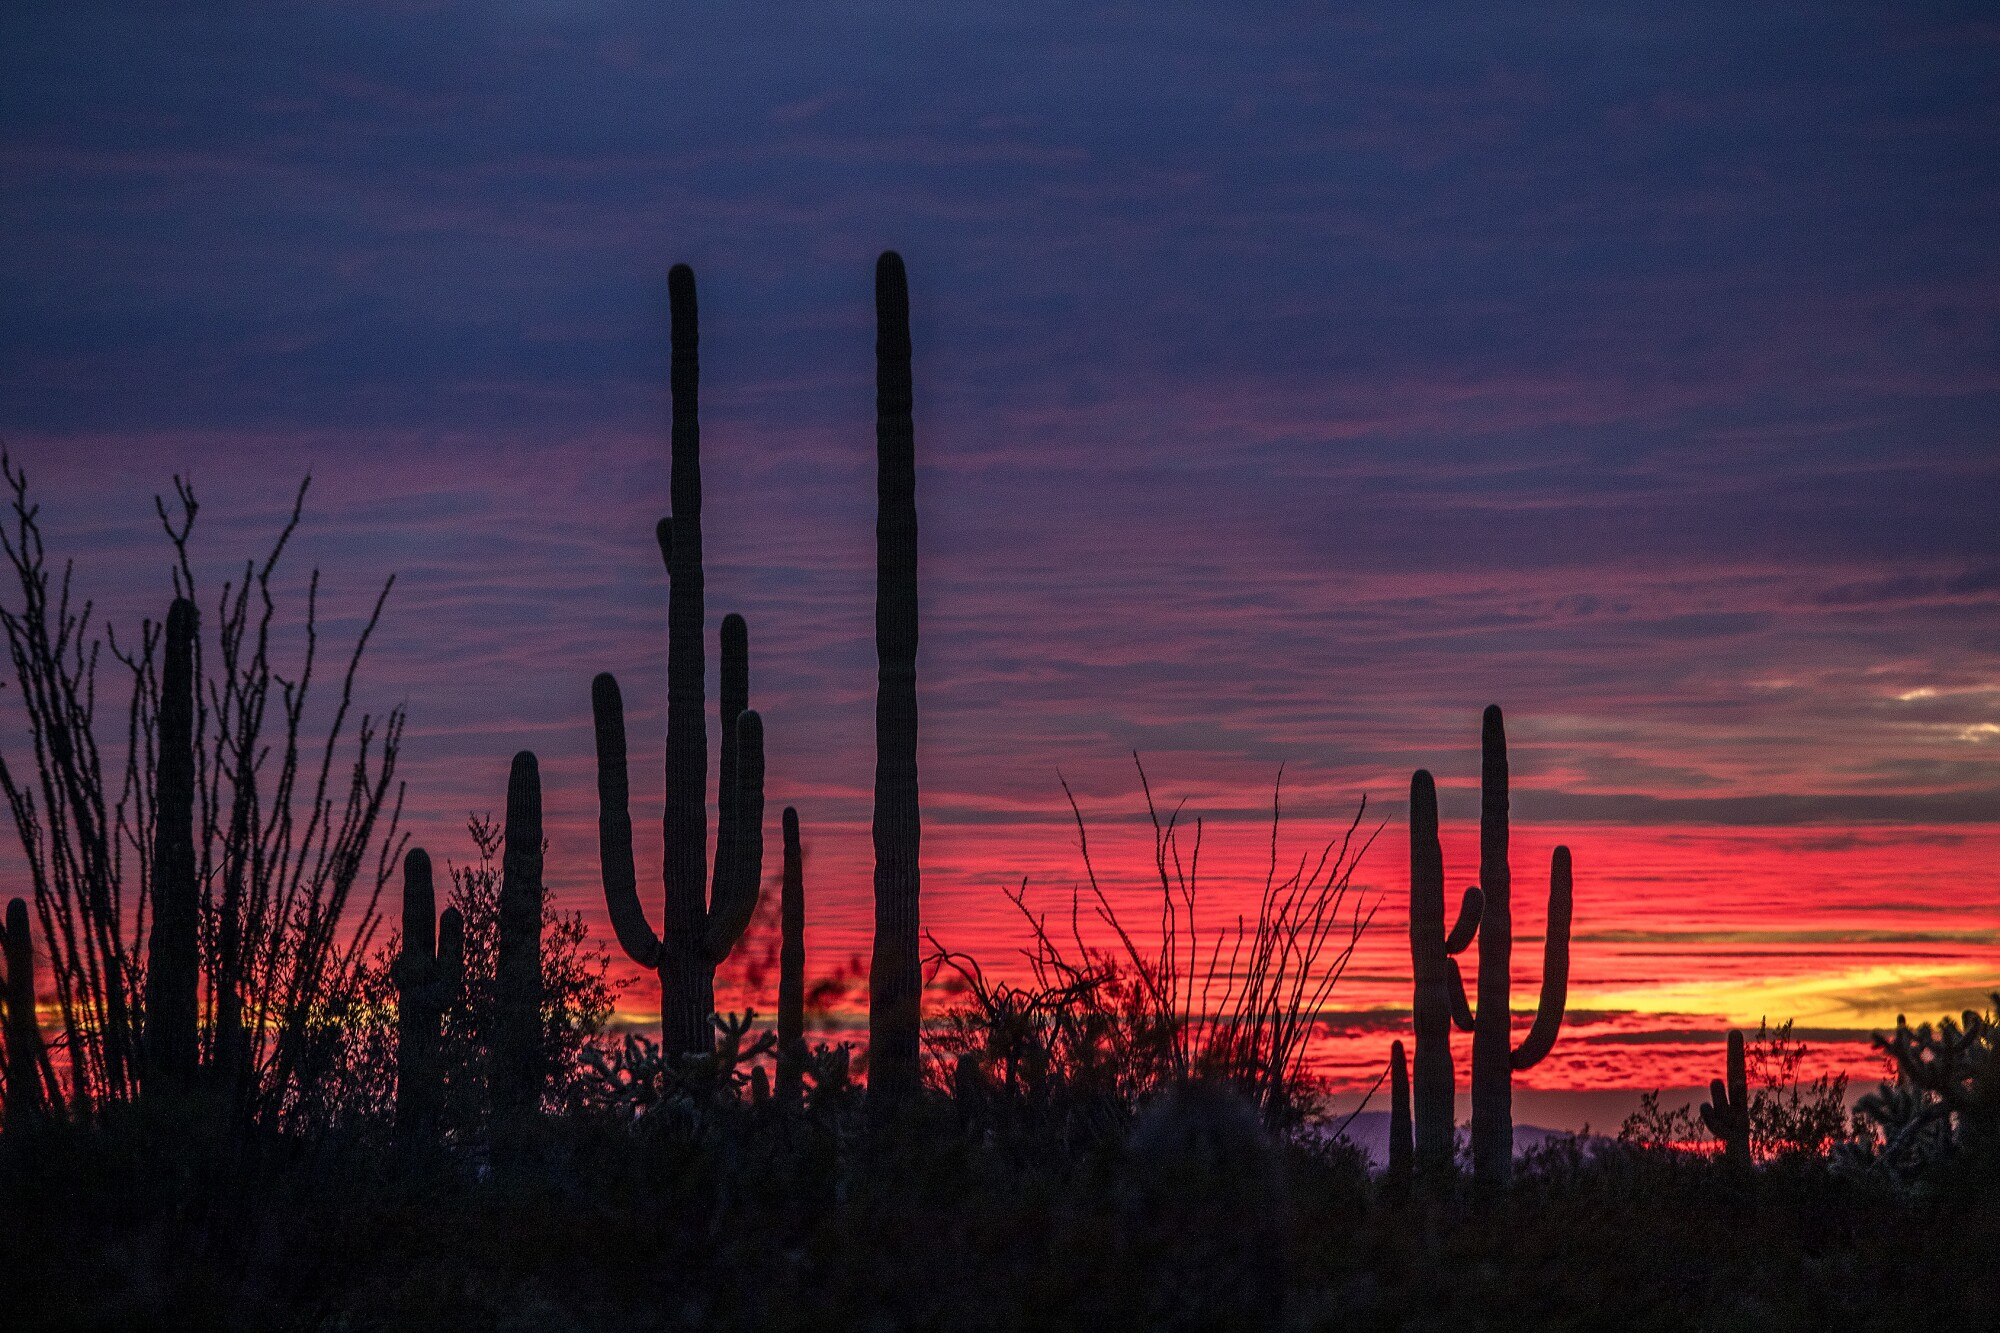 The sun sets behind saguaro cactuses and ocotillos on the La Abra Plain in Organ Pipe Cactus National Monument  in Arizona.